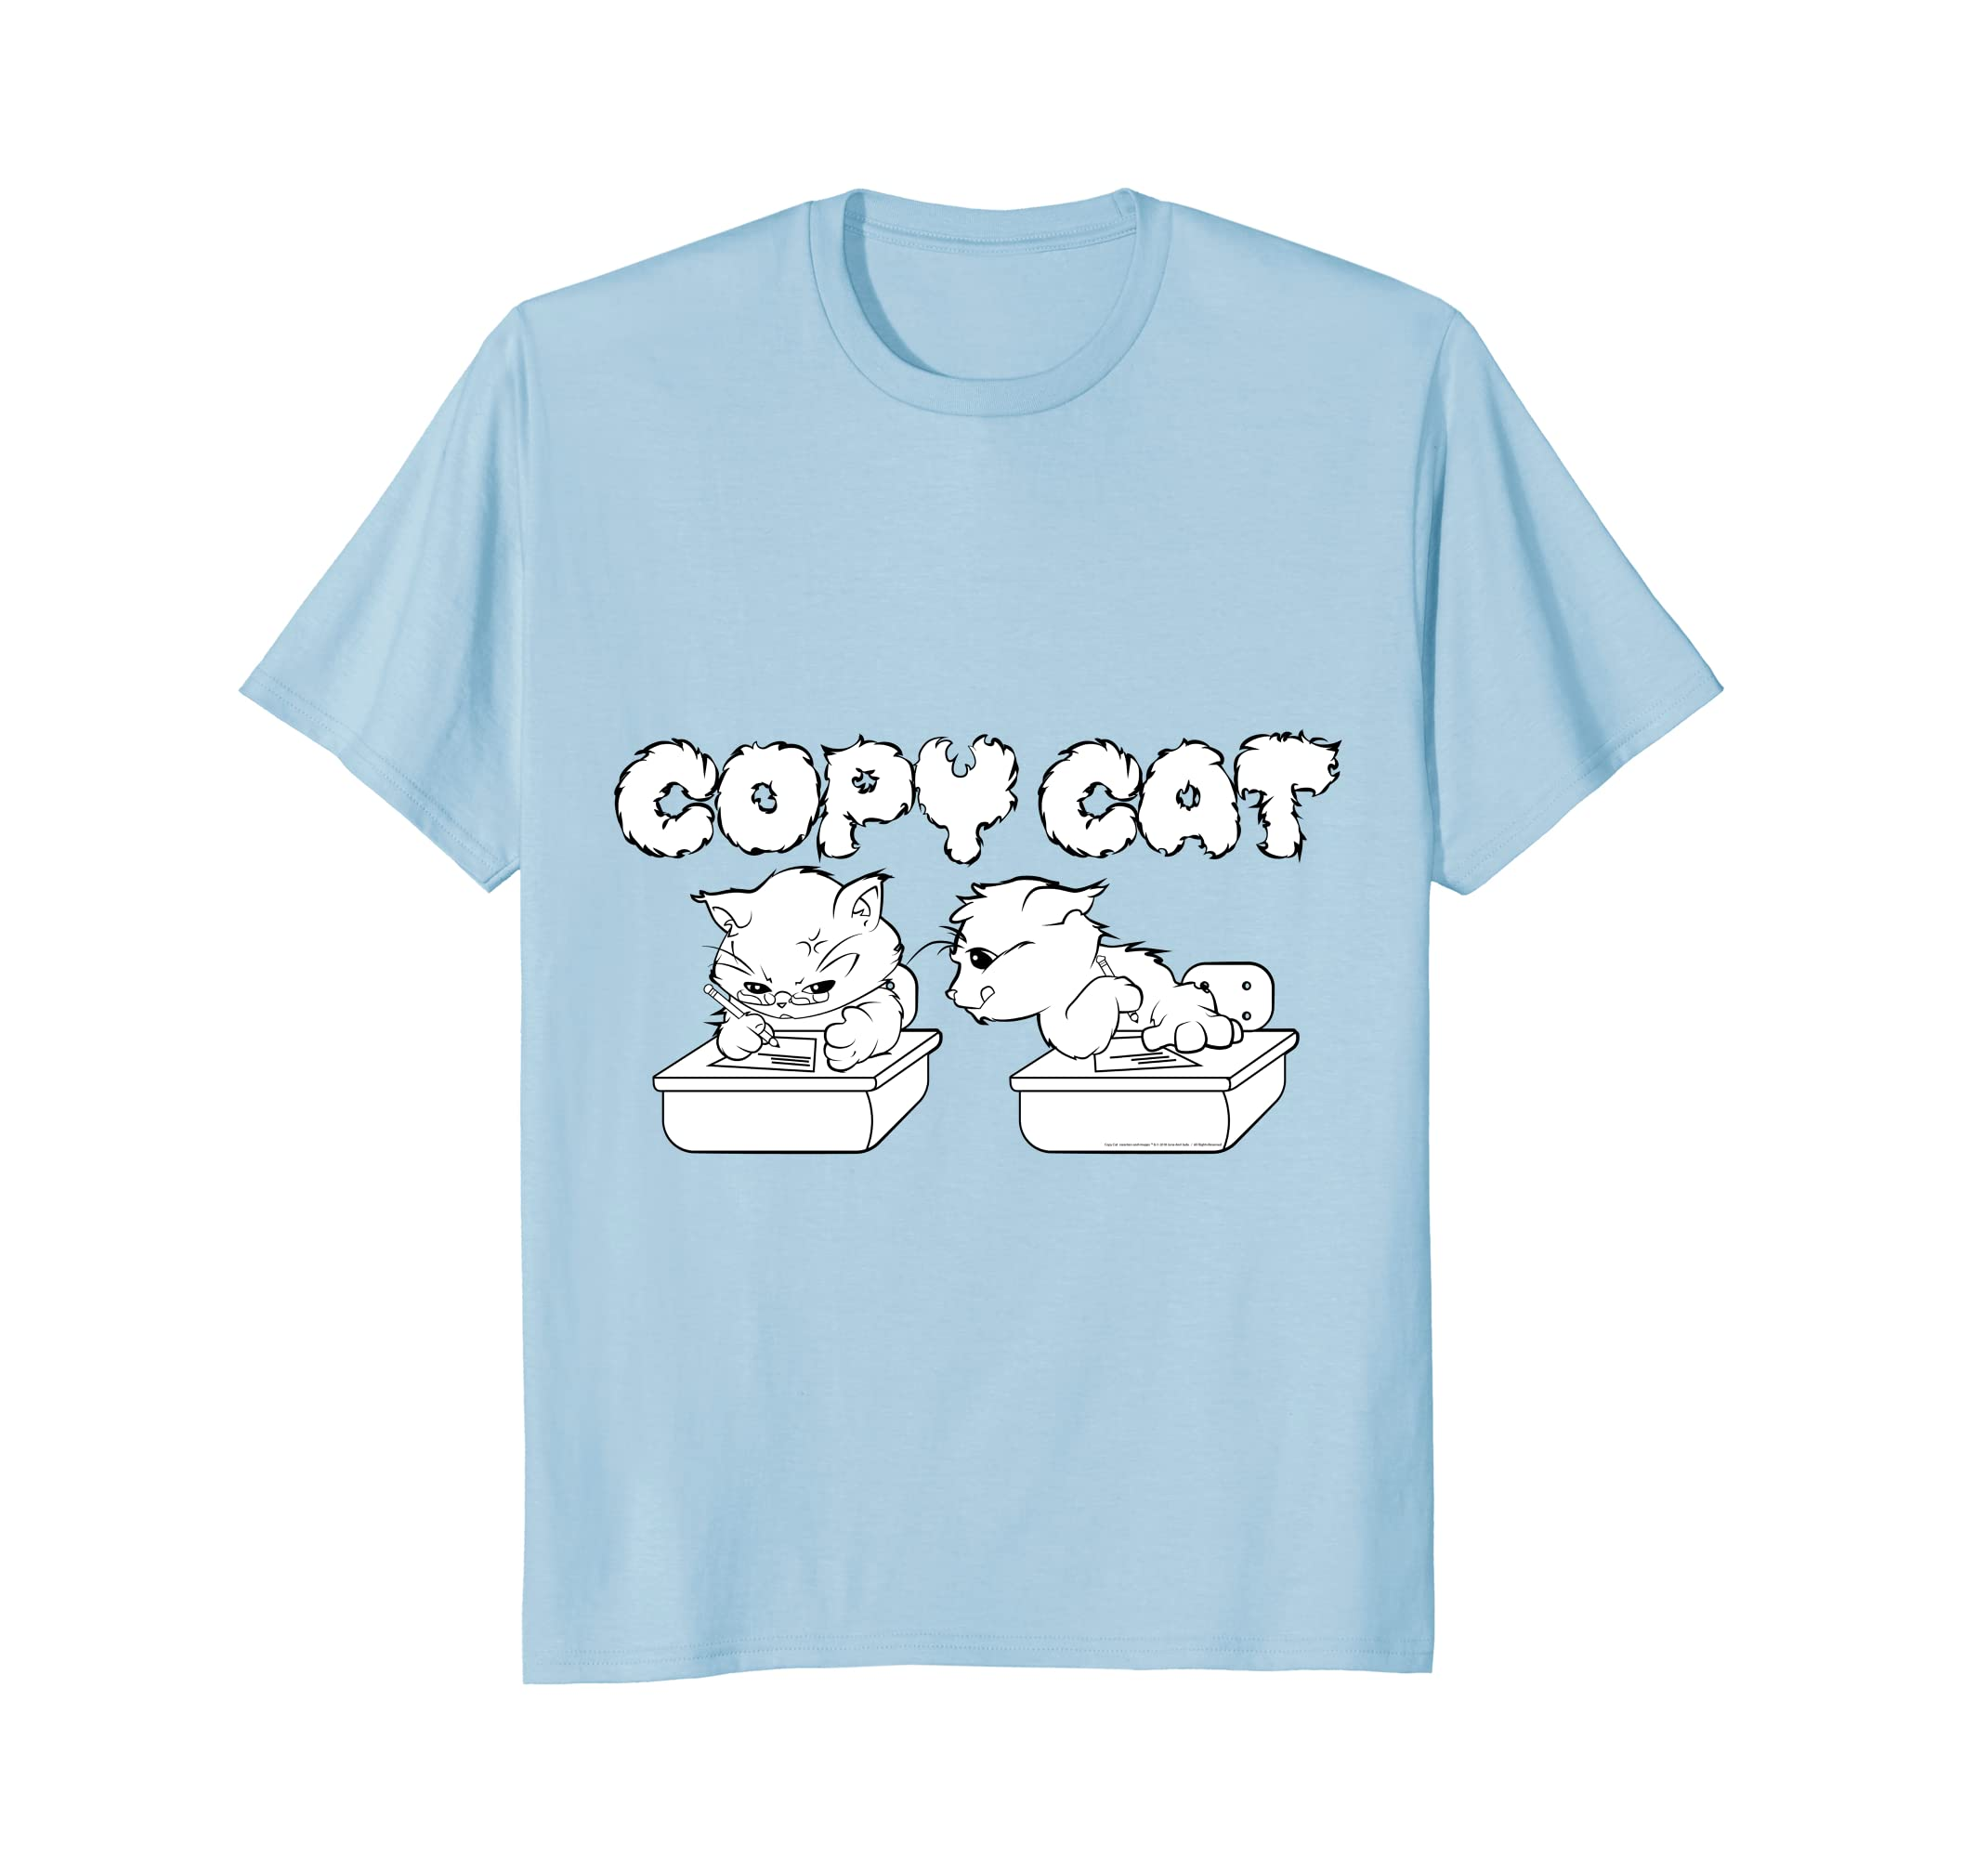 Adorable Cat T Shirt Copy Cat Custom Design Gift Tee Ah My Shirt